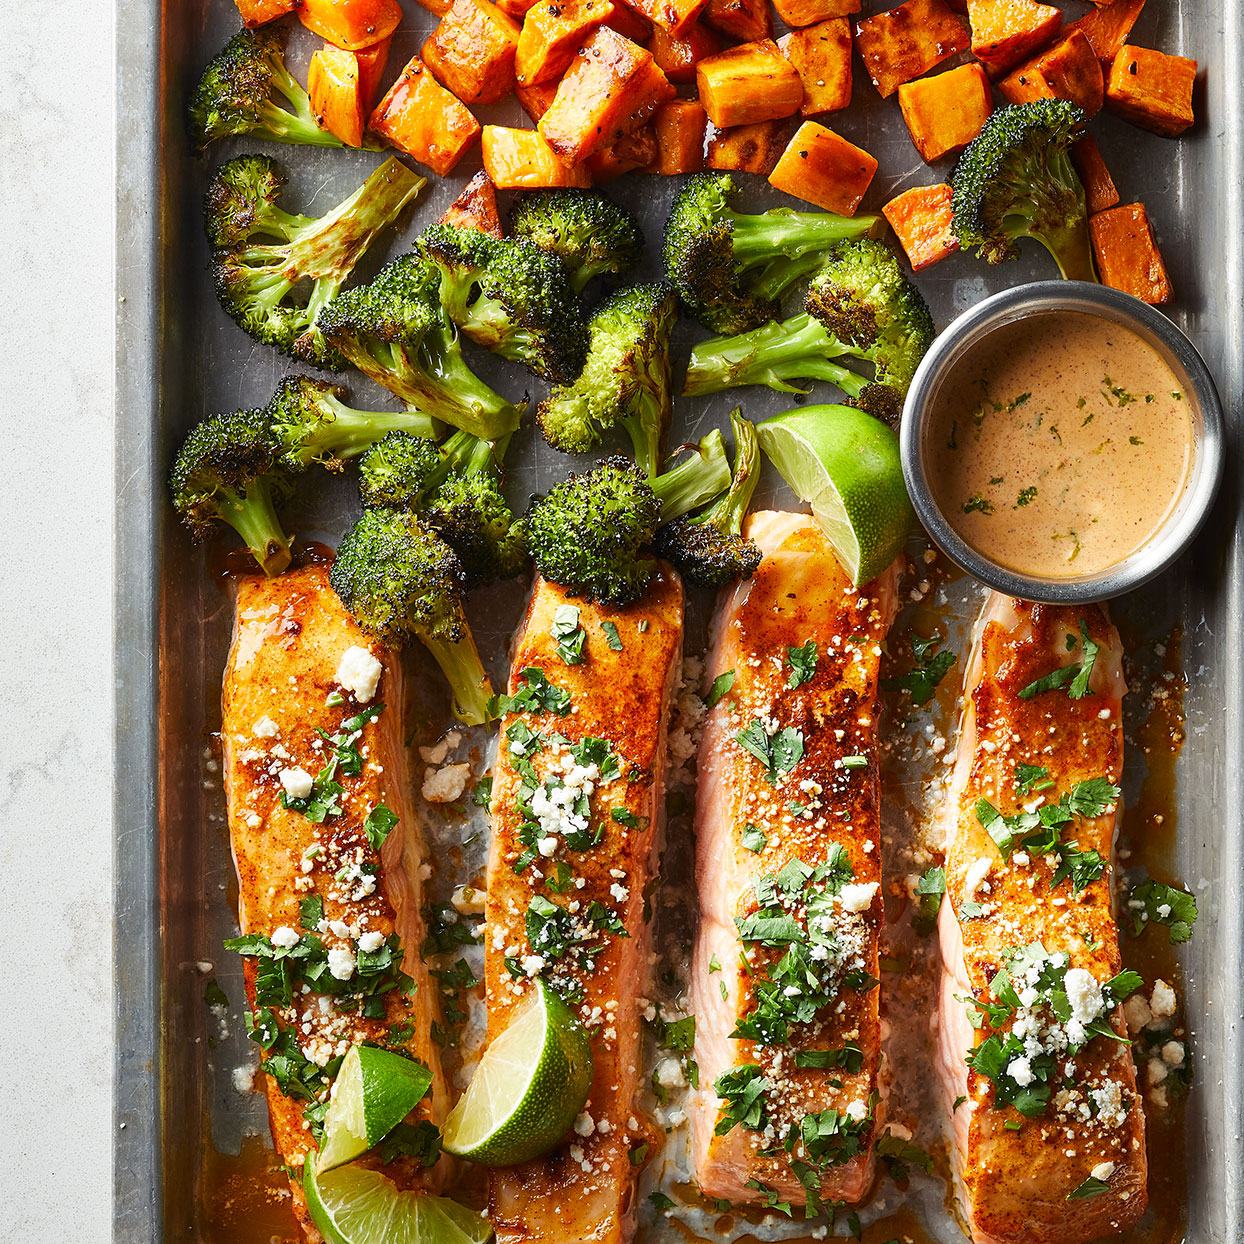 Sheet-Pan Salmon with Sweet Potatoes & Broccoli Trusted Brands